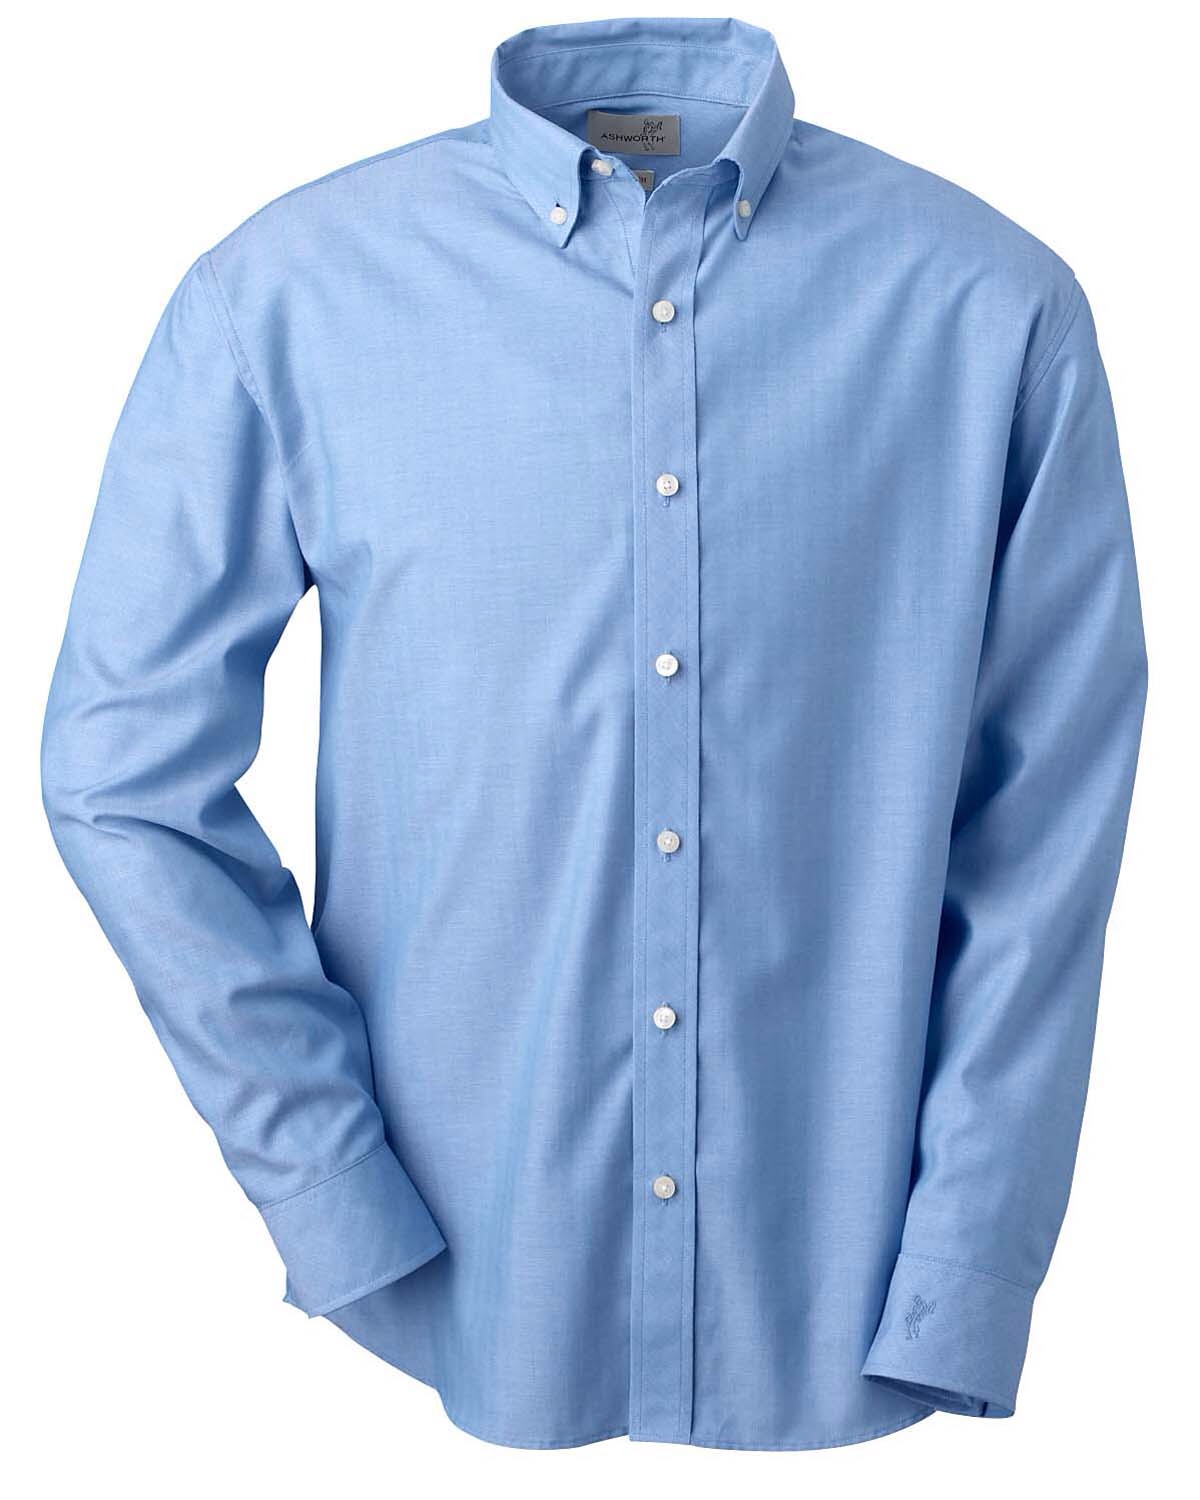 Conventional Placket